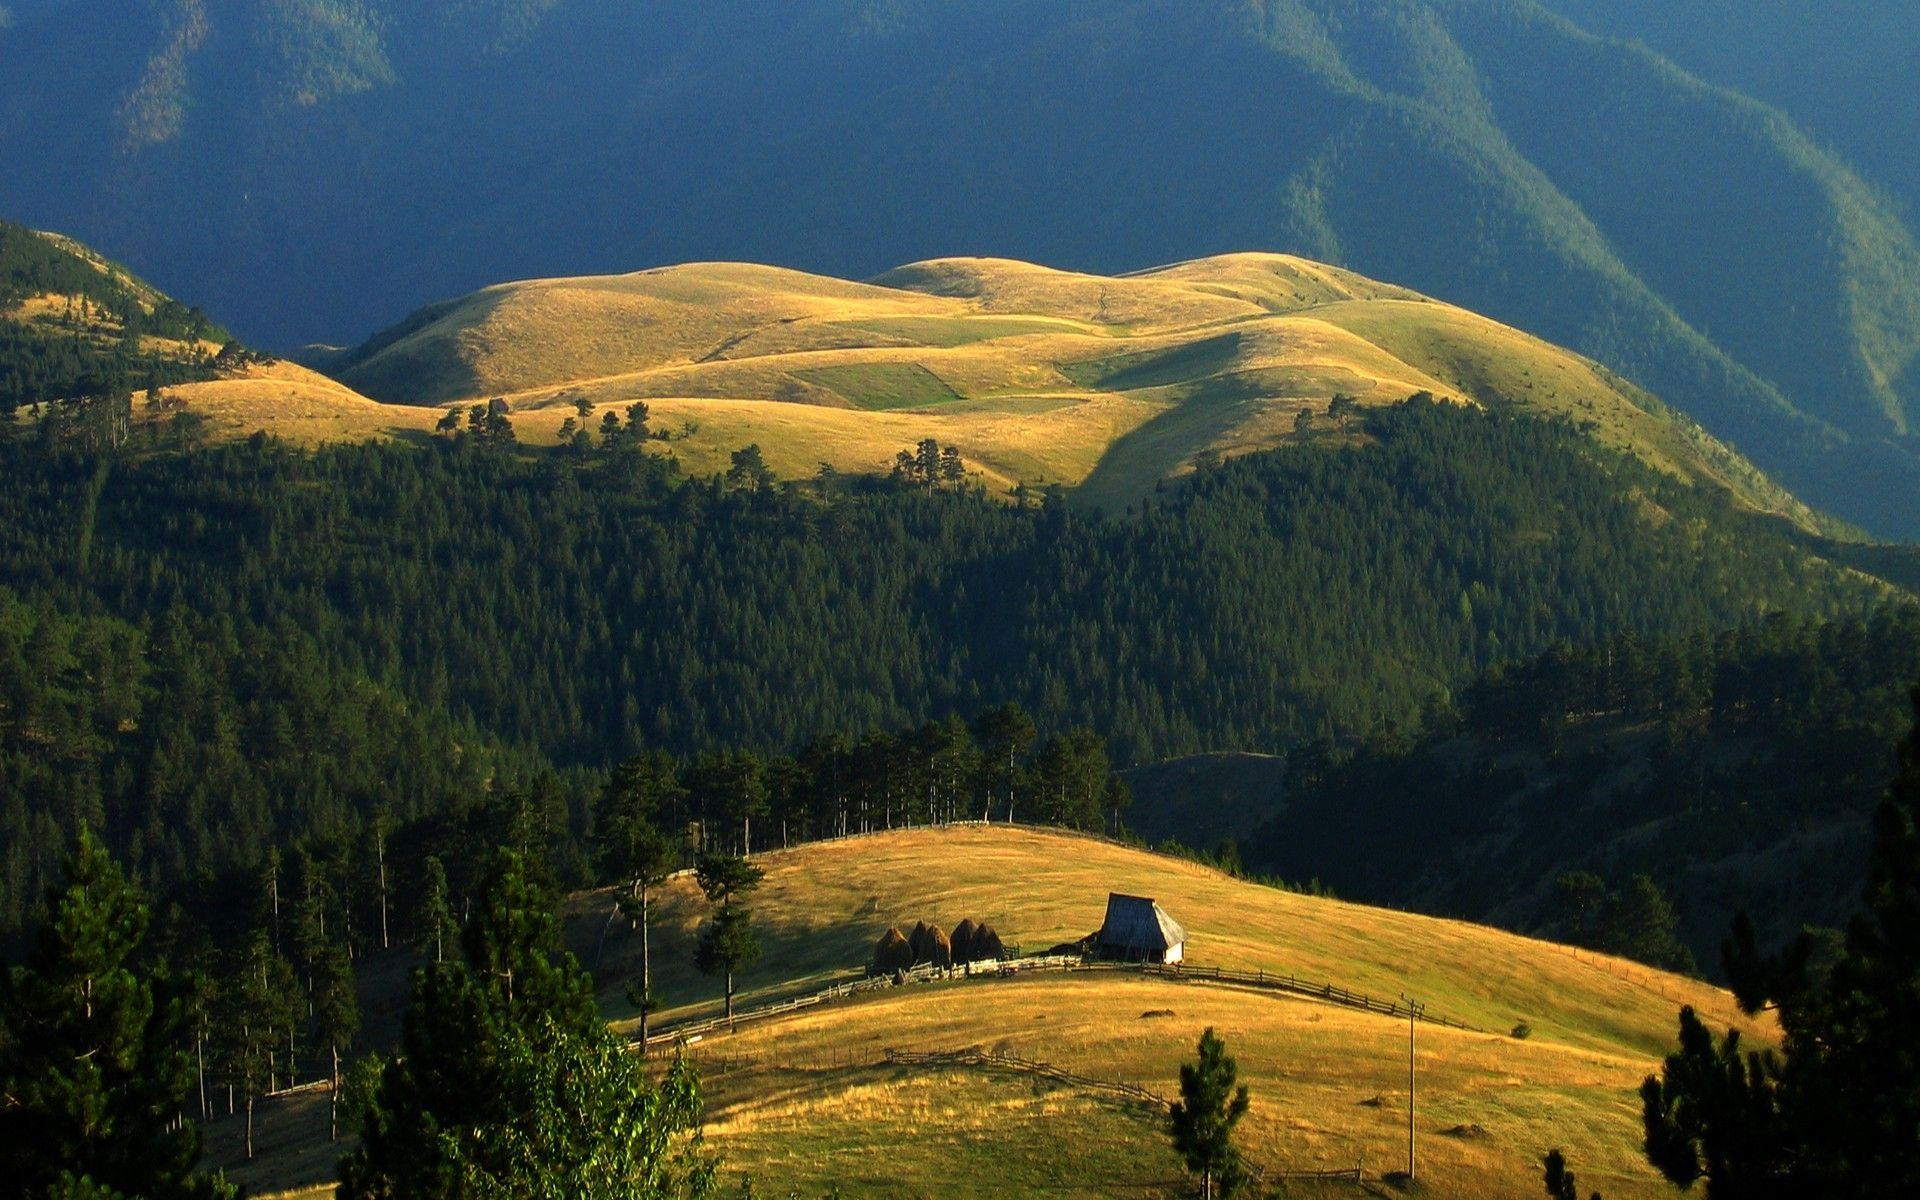 Landscapes Serbia Fresh New Hd Wallpapers